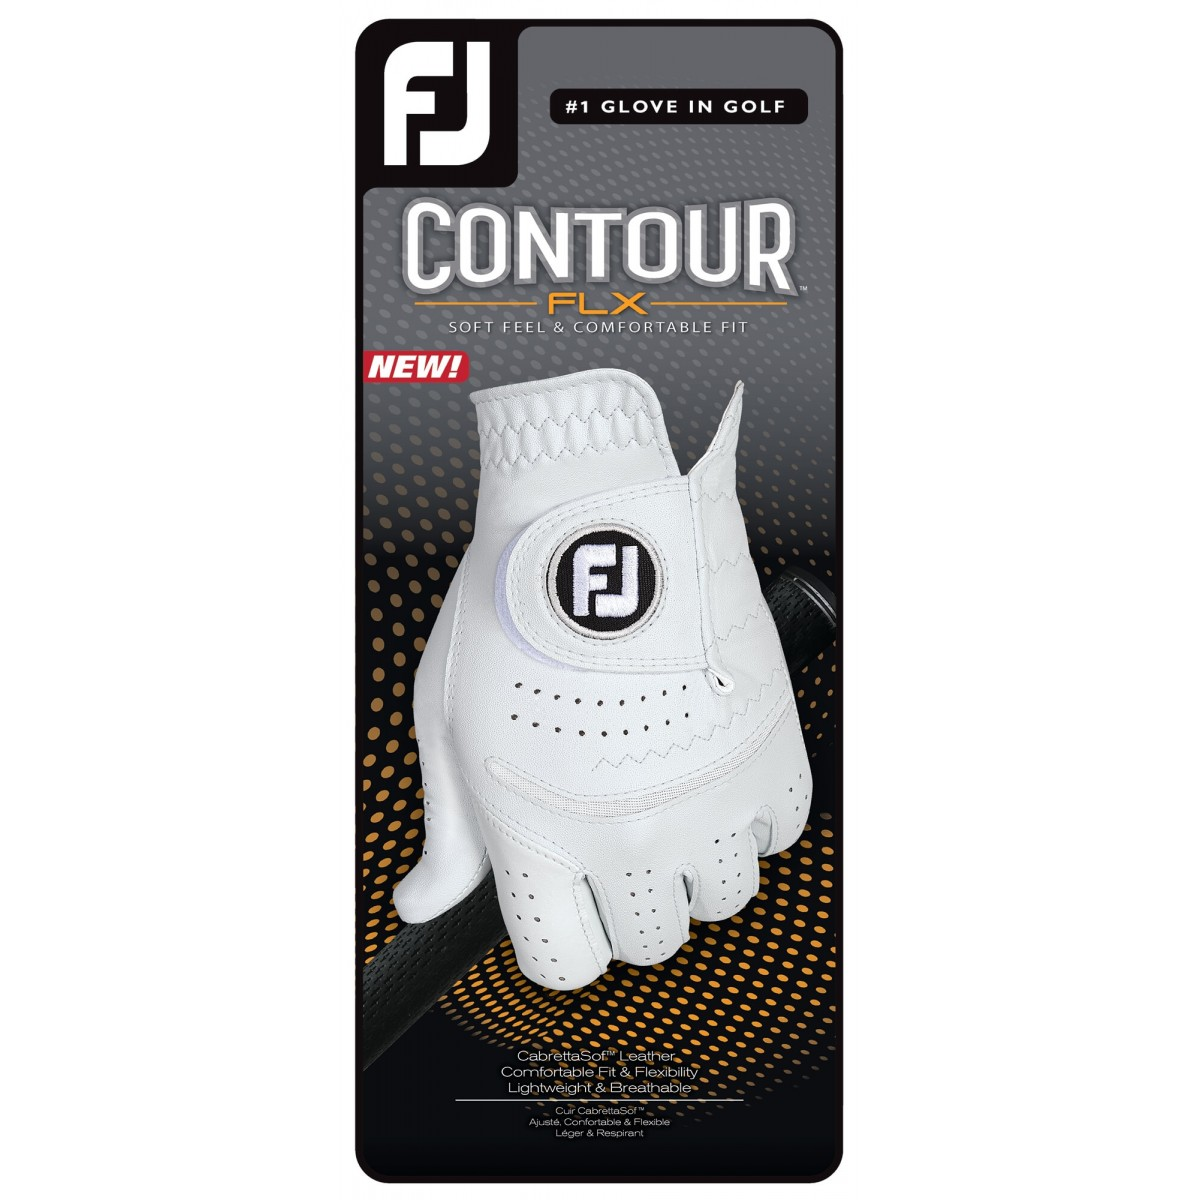 FootJoy Men's 2020 Contour FLX Golf Glove - Left Hand Cadet